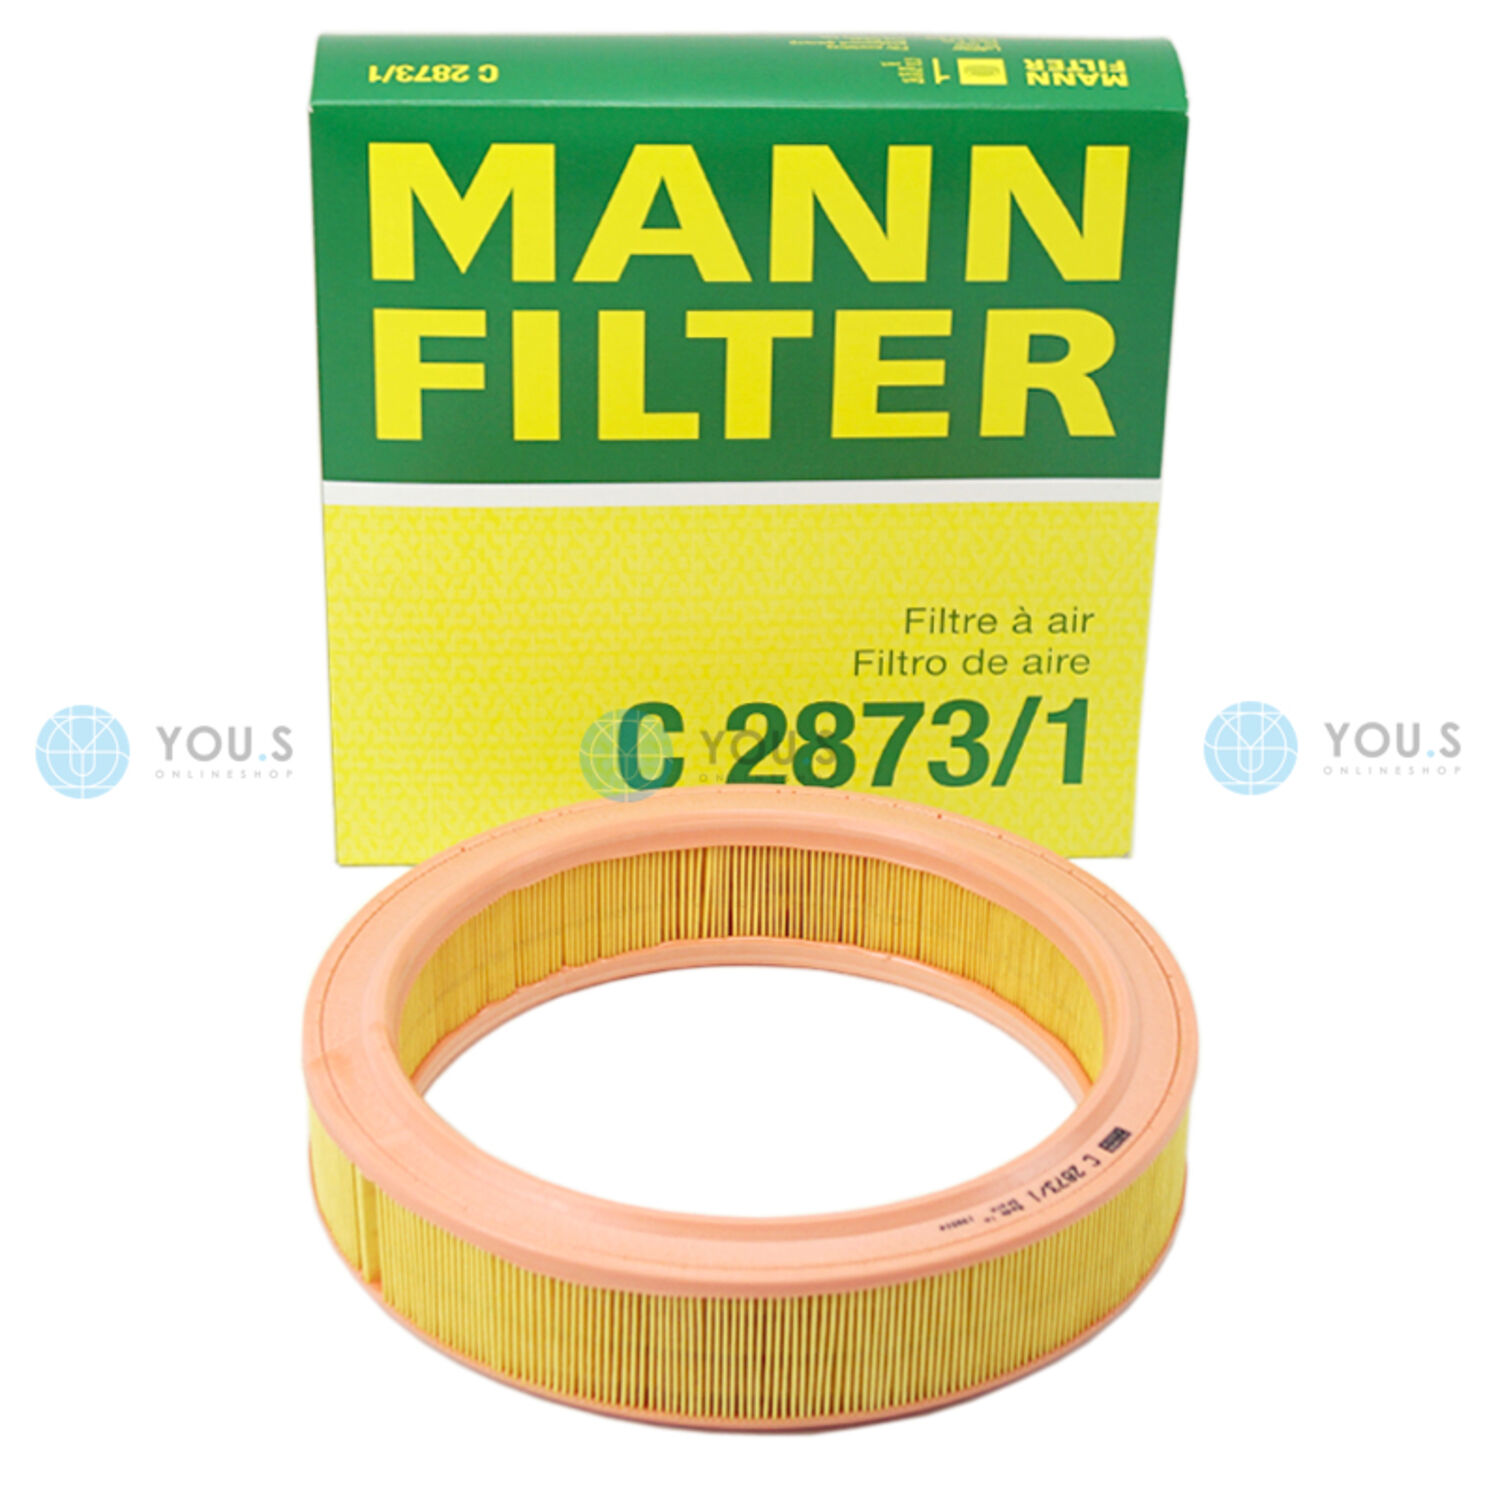 VW Polo 9N 1.4 16V Genuine MANN Engine Air Filter Service Replacement